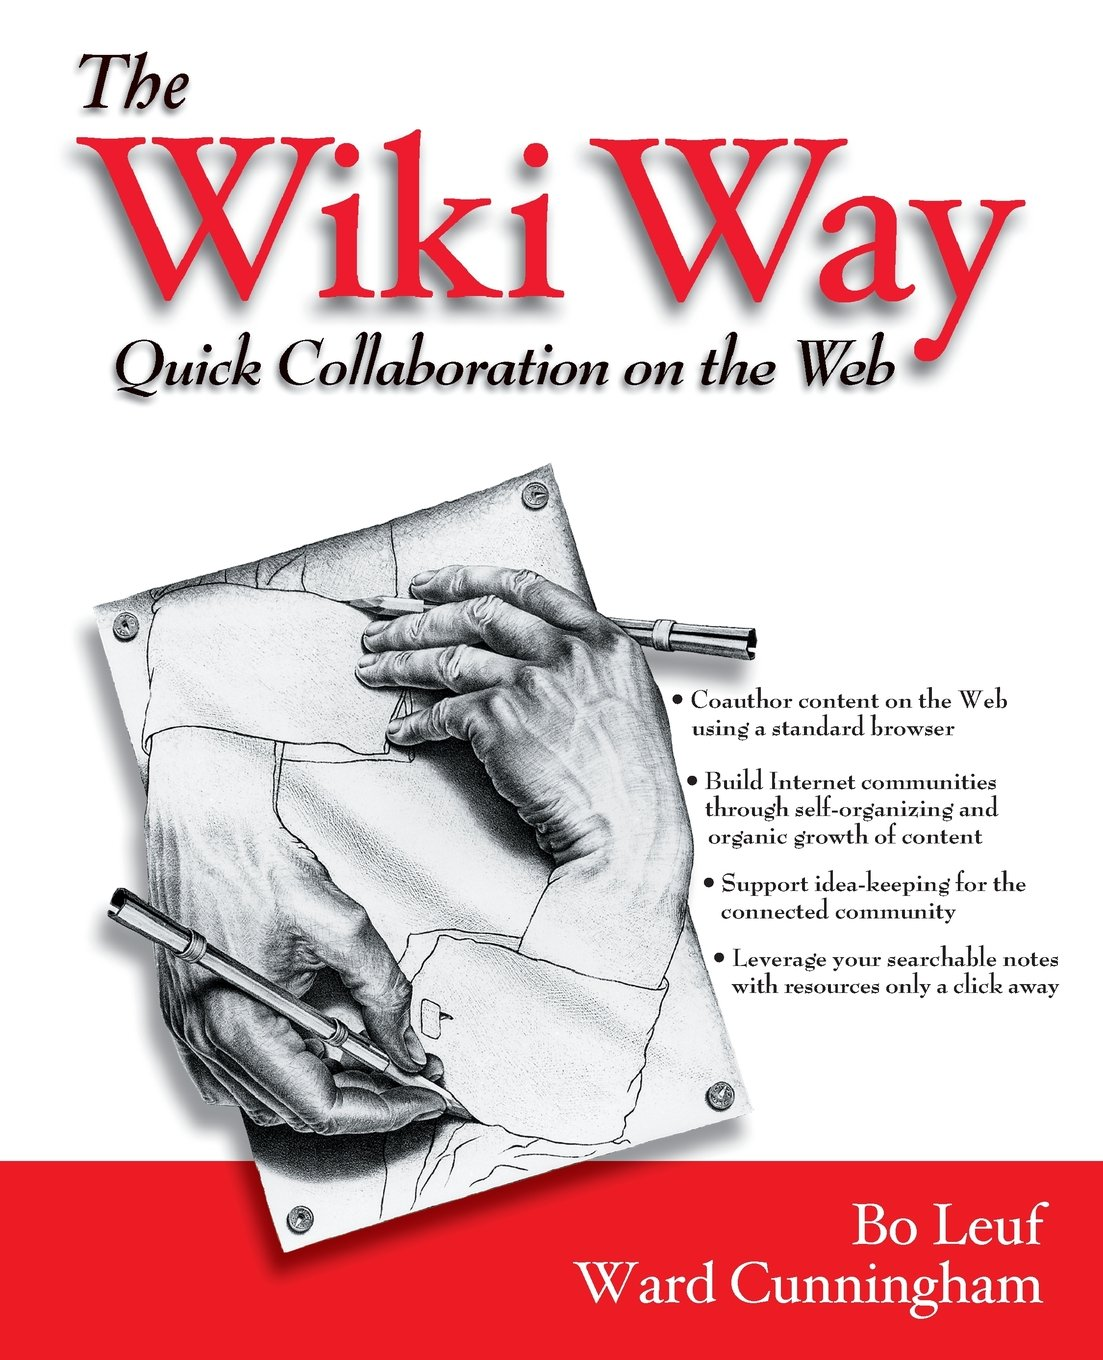 Amazon.fr - The Wiki Way: Collaboration and Sharing on the Internet: Quick Collaboration on the Web - Bo Leuf, Ward Cunningham - Livres